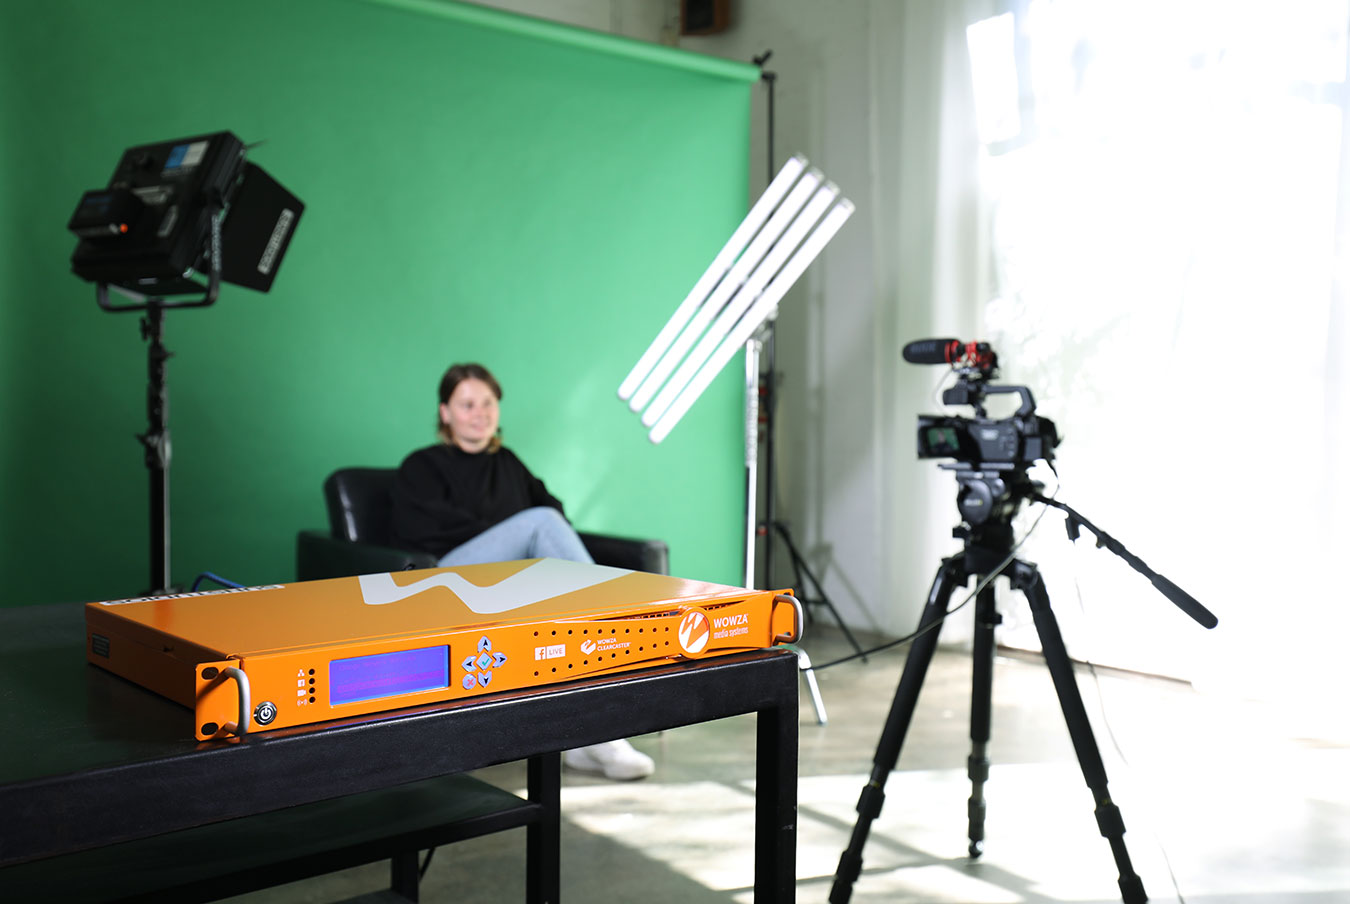 woman-being-filmed-in-front-of-a-green-screen-under-lights-clearcaster-pro-in-foreground